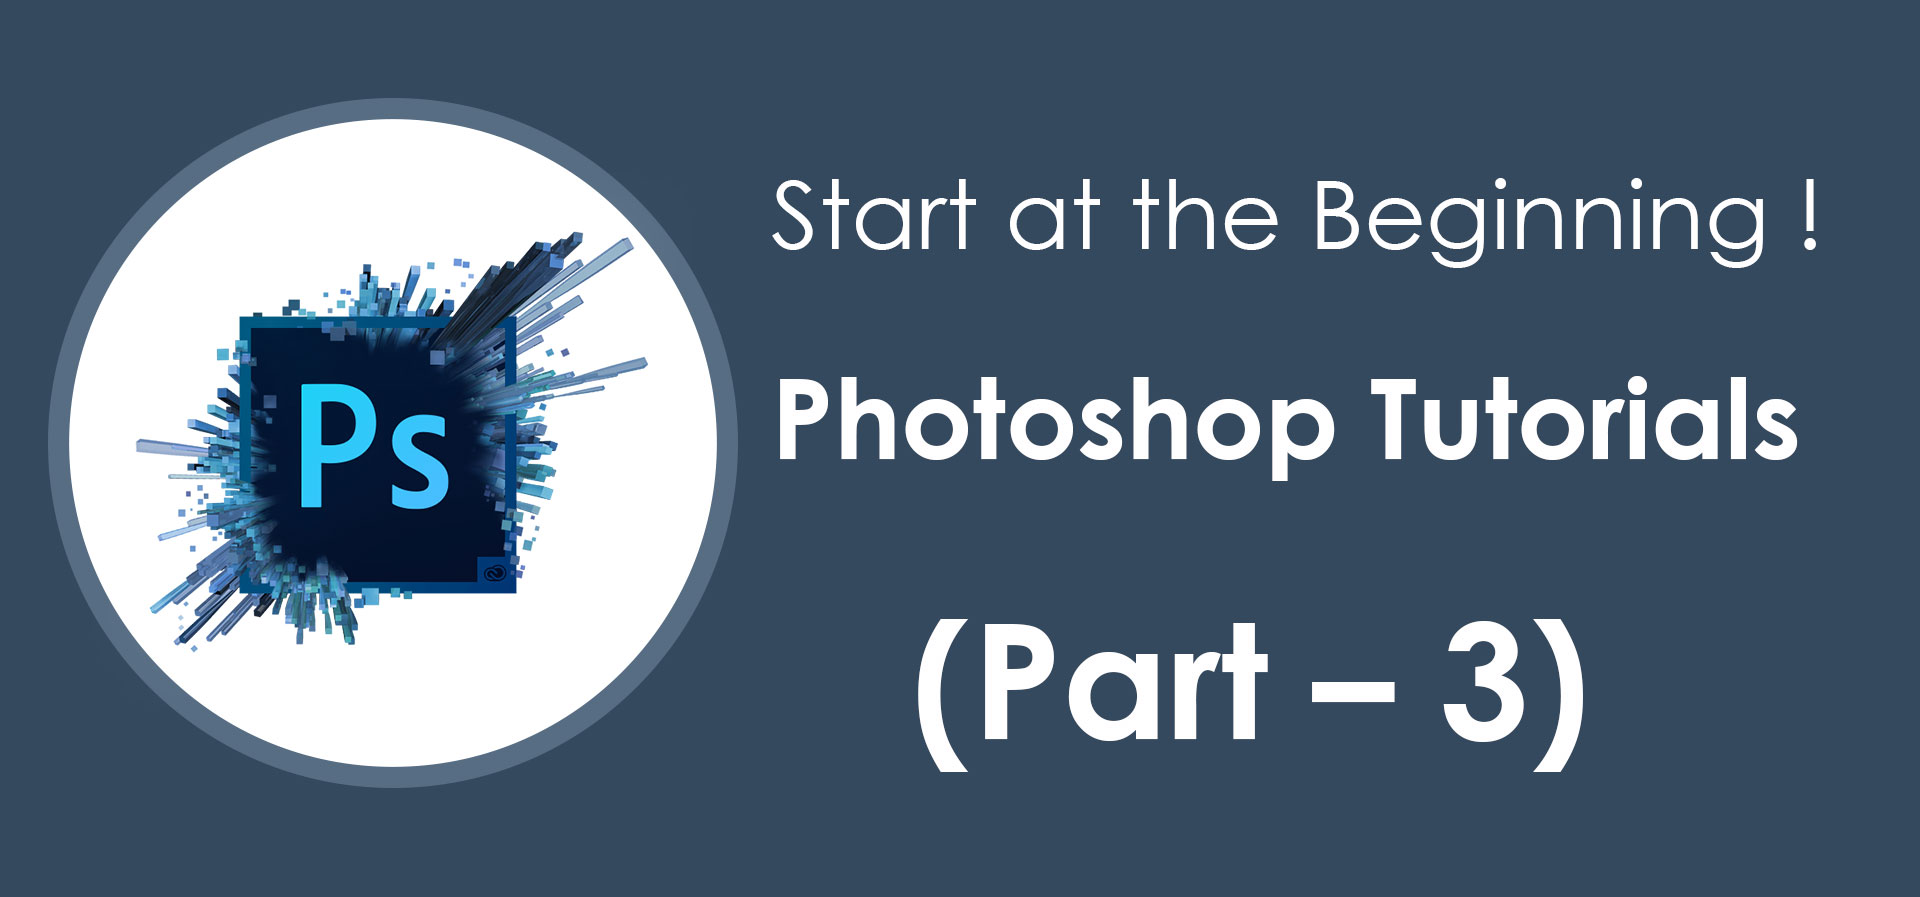 Start-at-the-Beginning-!-Photoshop-Tutorials